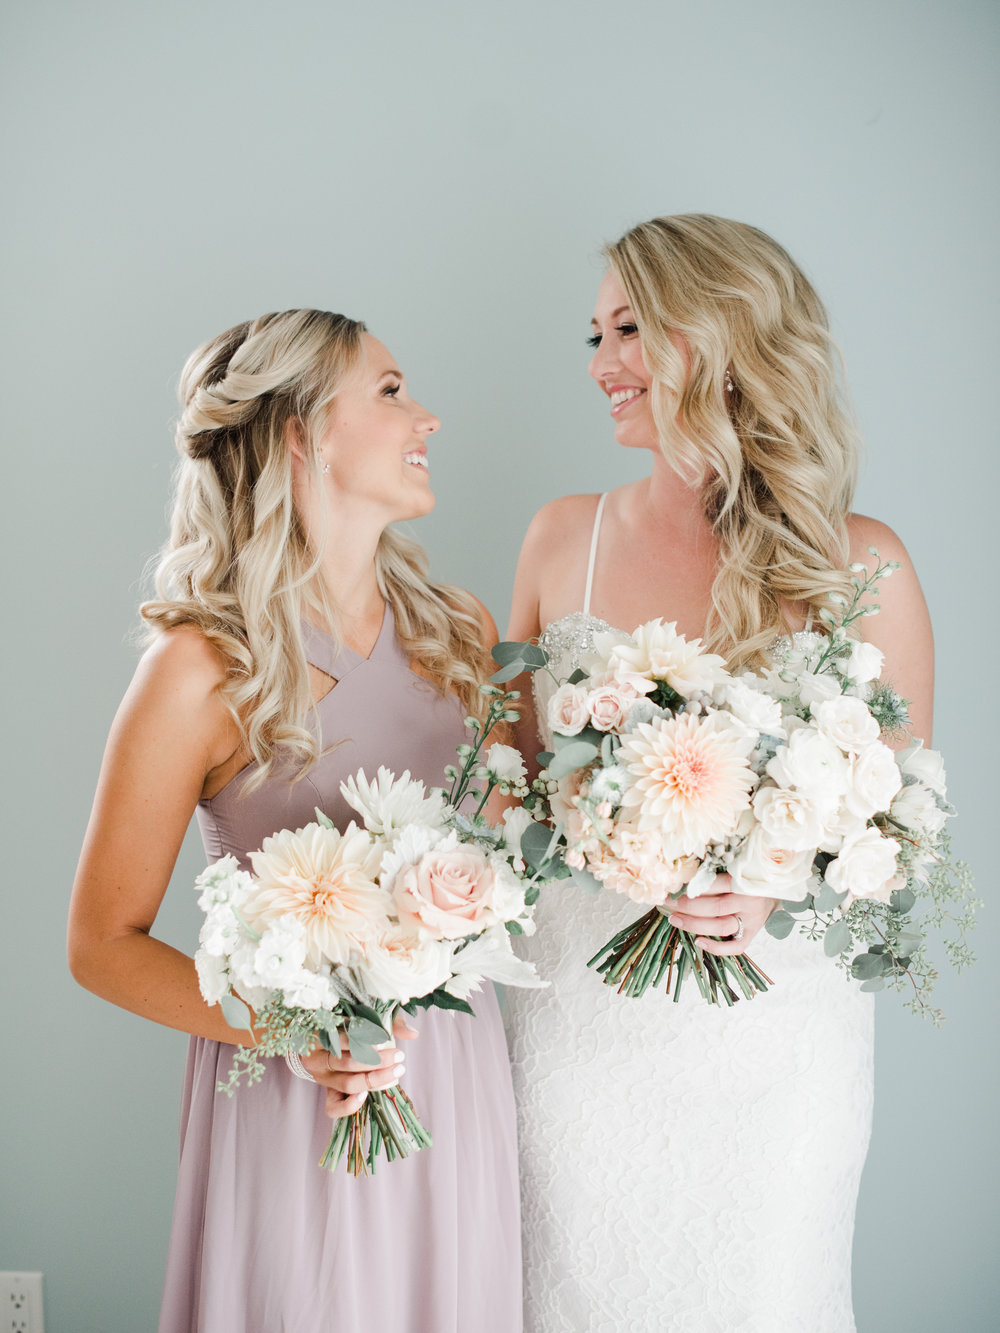 Photographer | Christie Graham   Wedding Planner | Filosophi Events  Makeup | Katie Elwood for Line Artistry  Hair | Jen Mathison for Line Artistry  Makeup Assistant & Hair | Vivian Lam for Line Artistry  Flowers | Celsia Floral